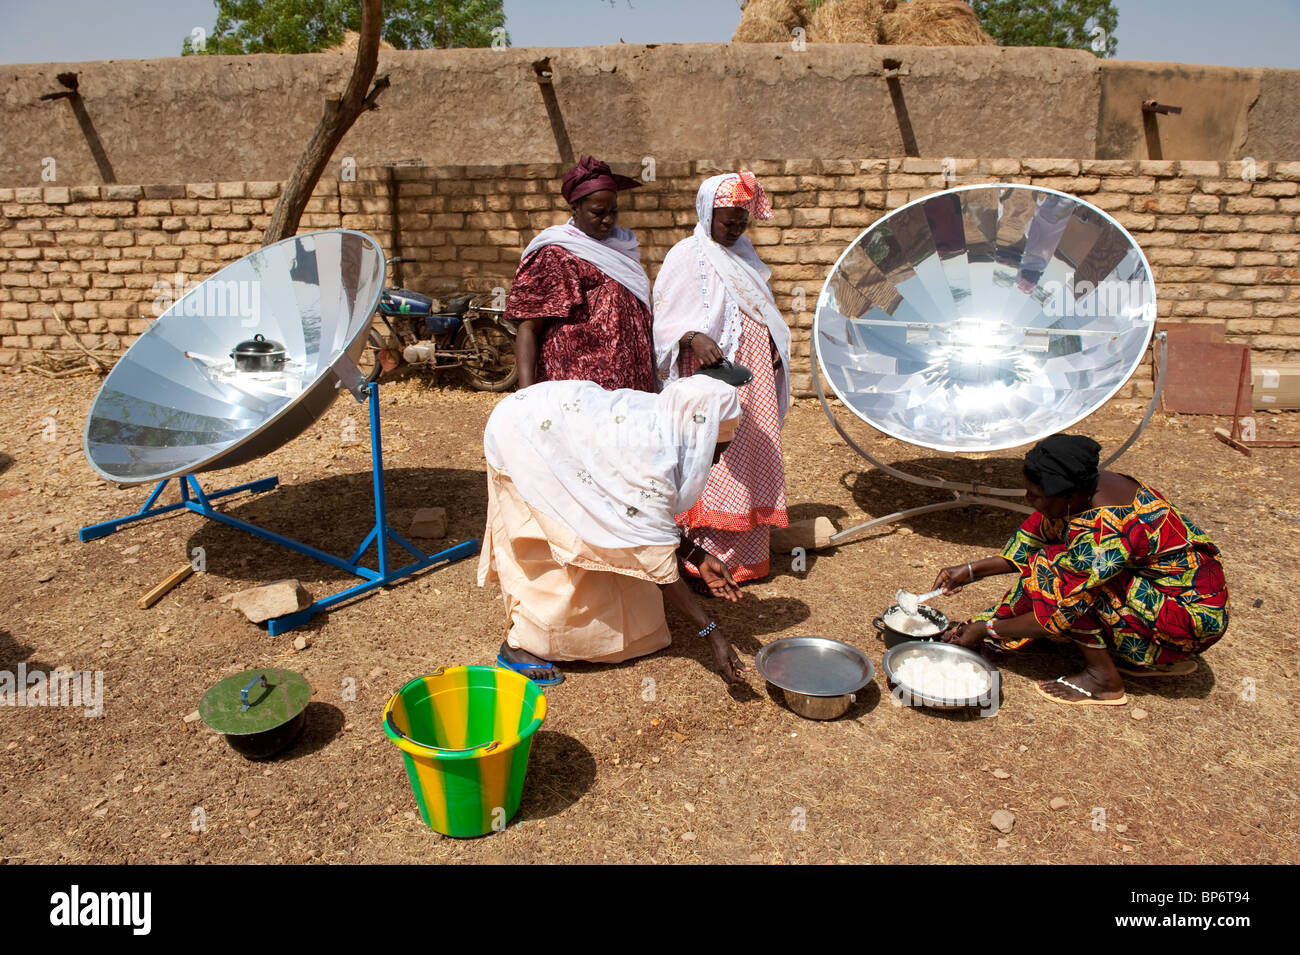 West Africa Mali Bandiagara in Dogon land, woman with solar cooker preparing food in solar workshop - Stock Image